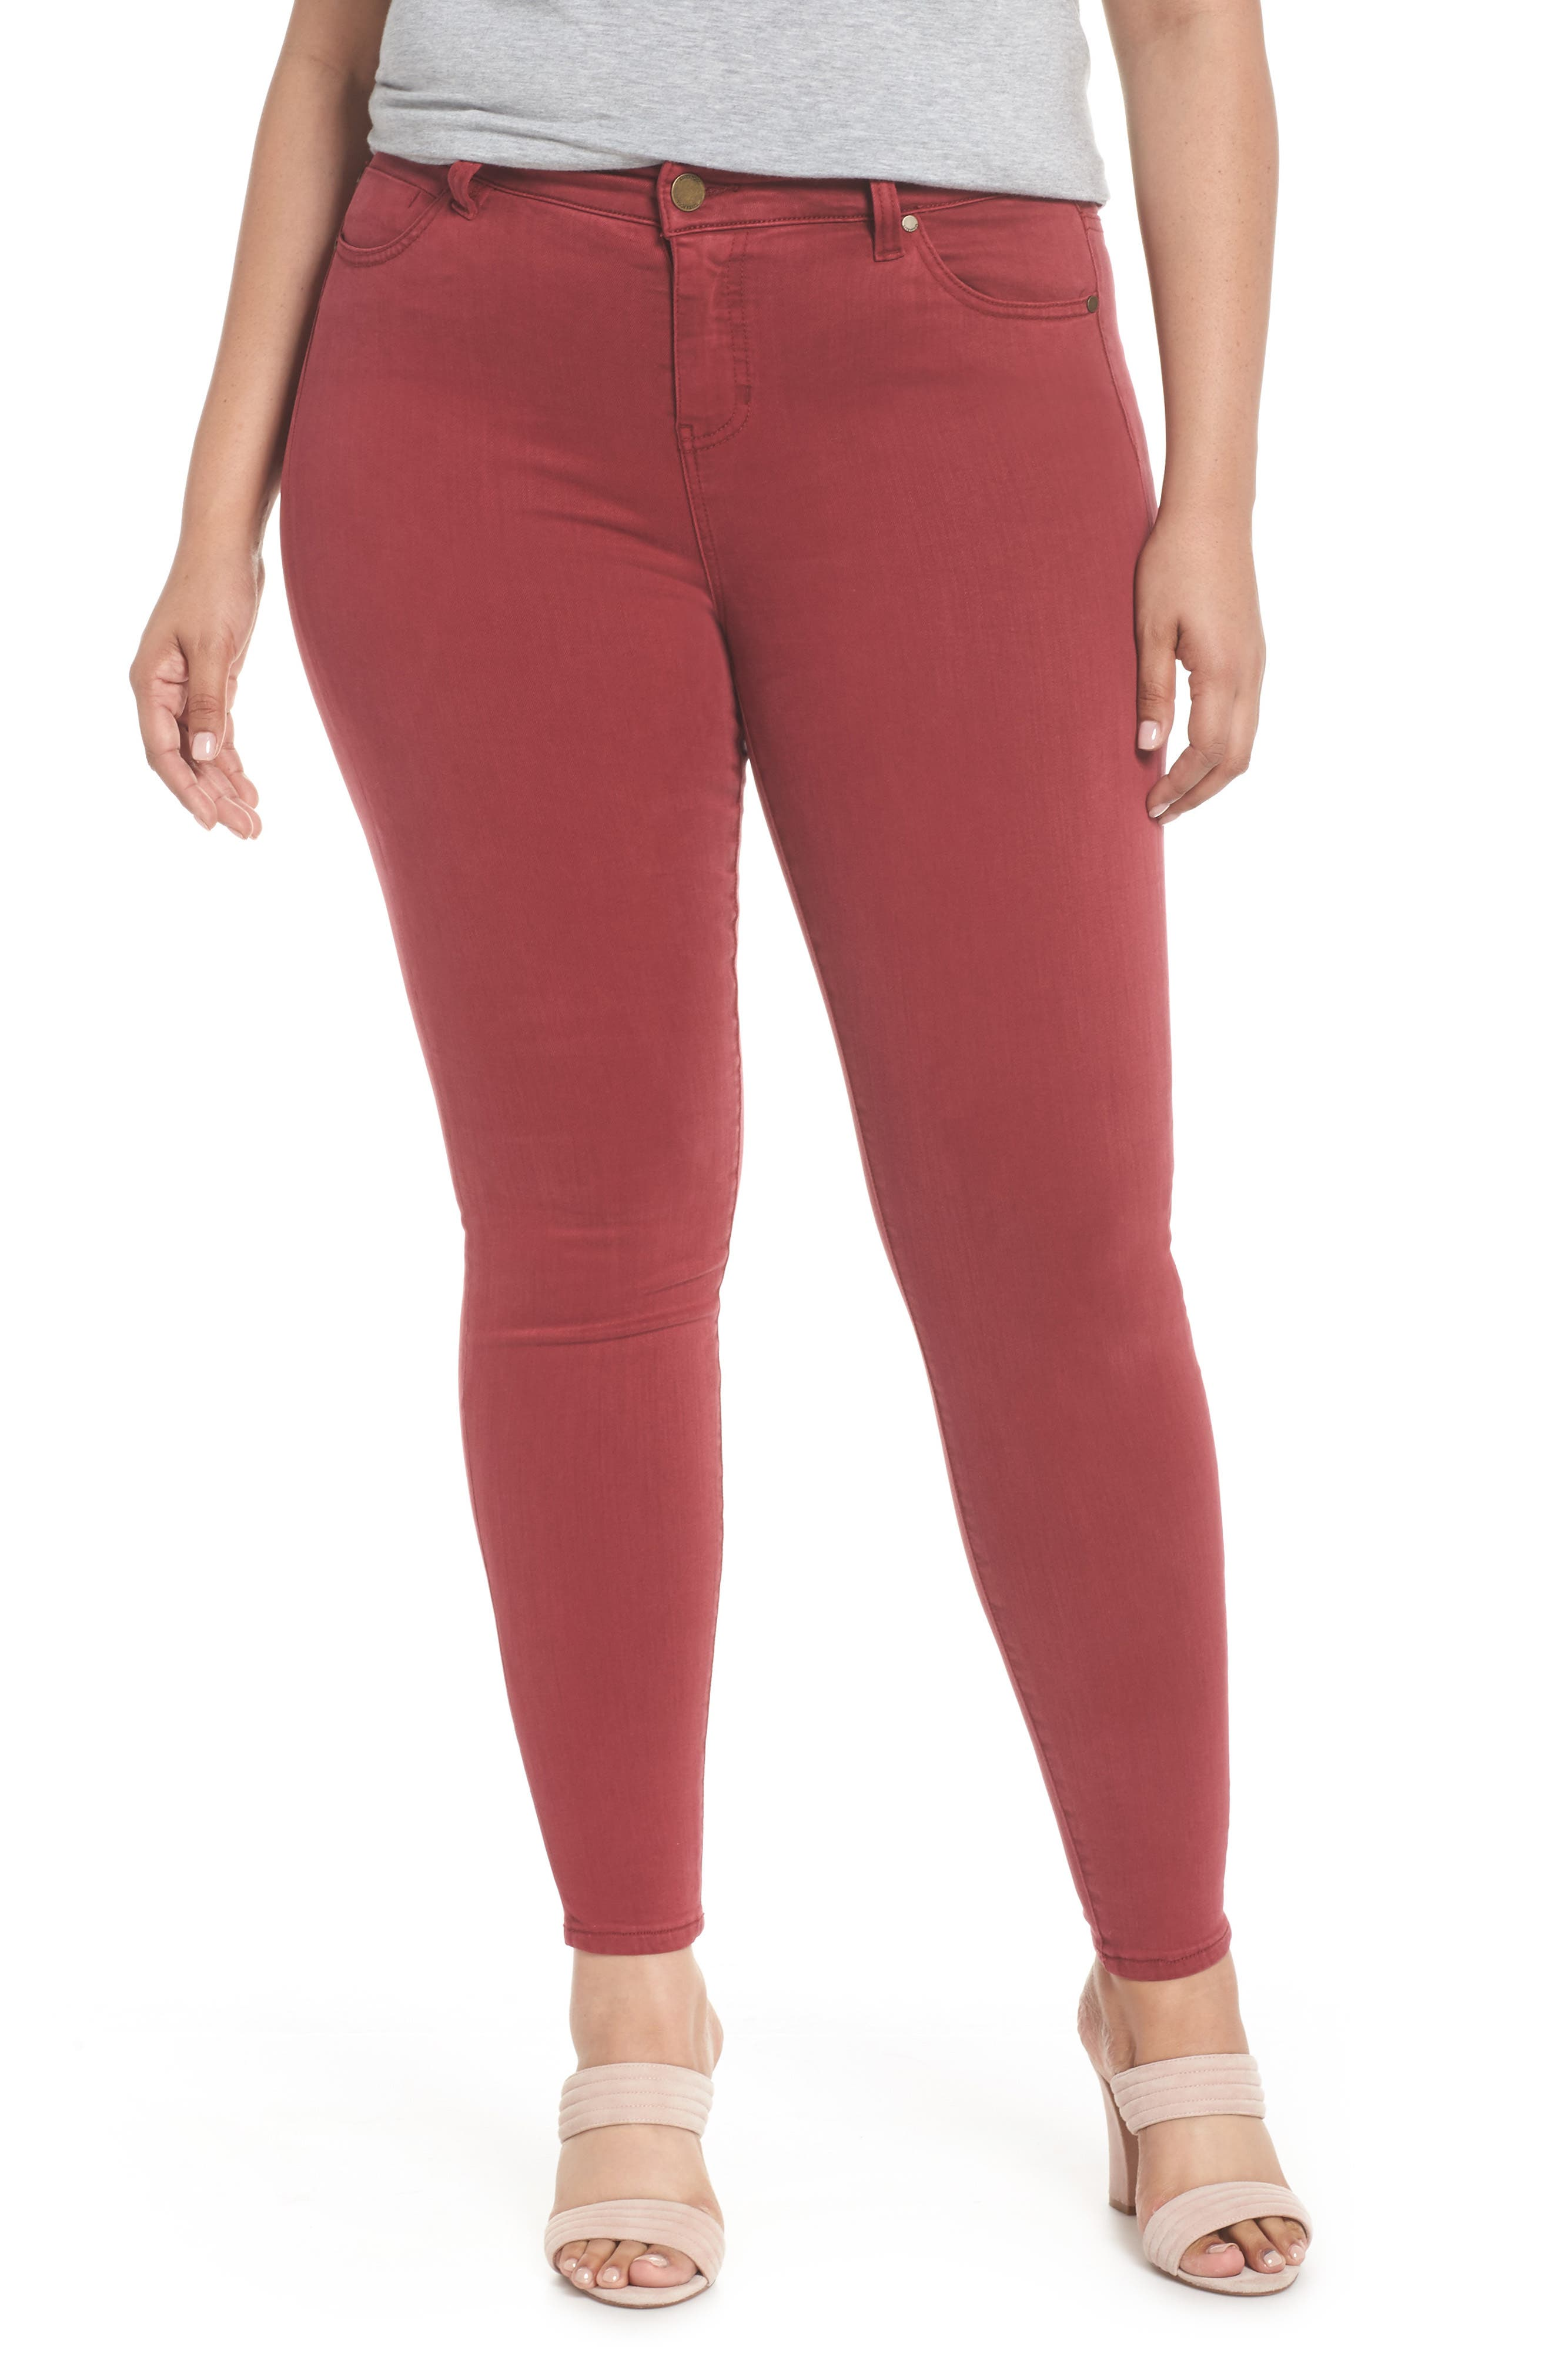 Liverpool Jeans Company Abby Skinny Jeans (Biking Red) (Plus Size)